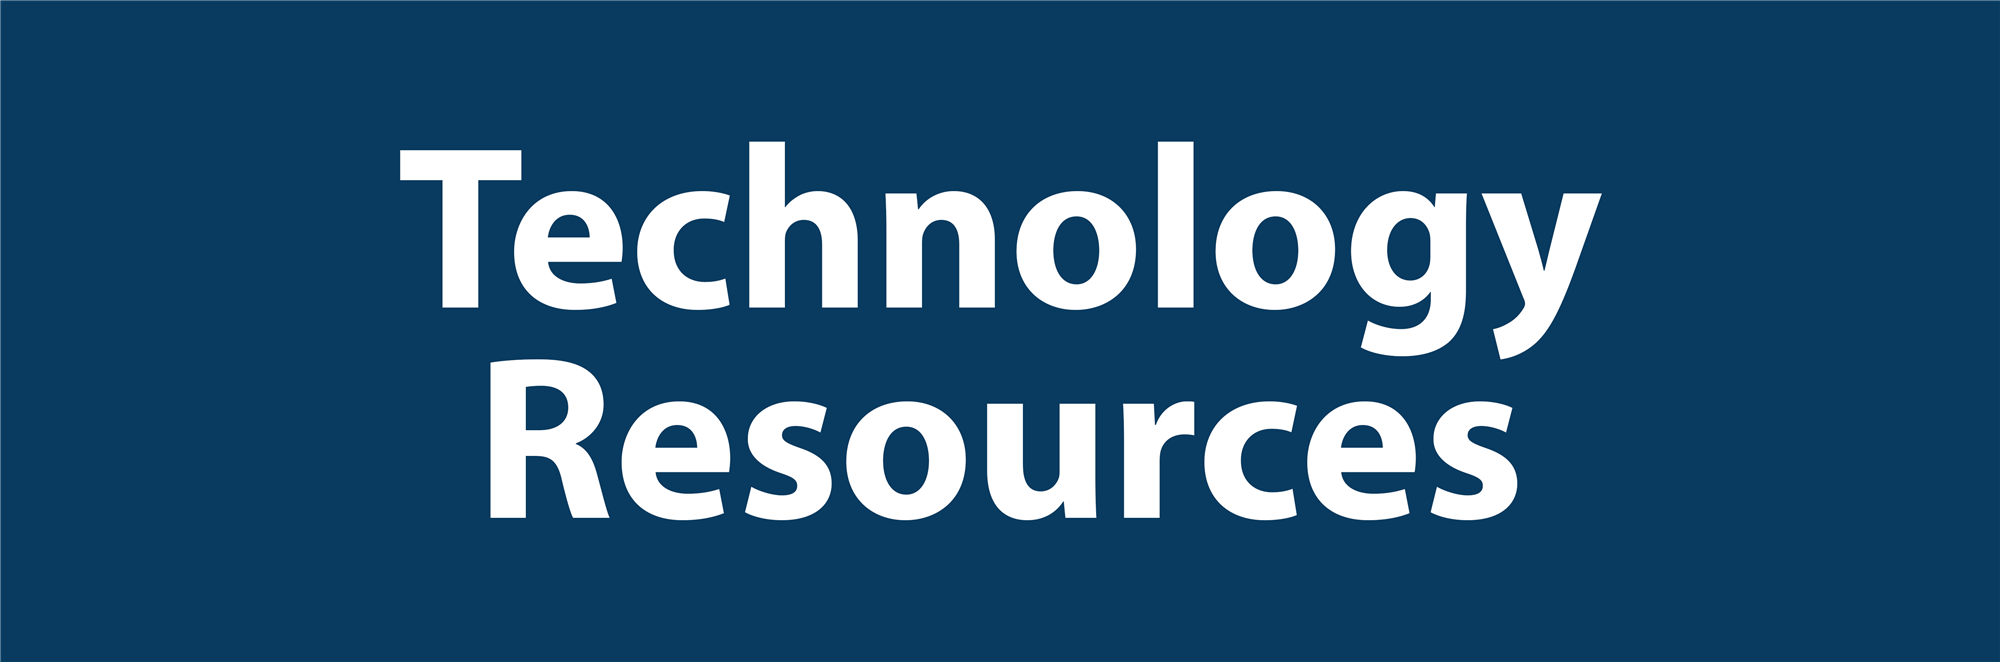 Technology Resources